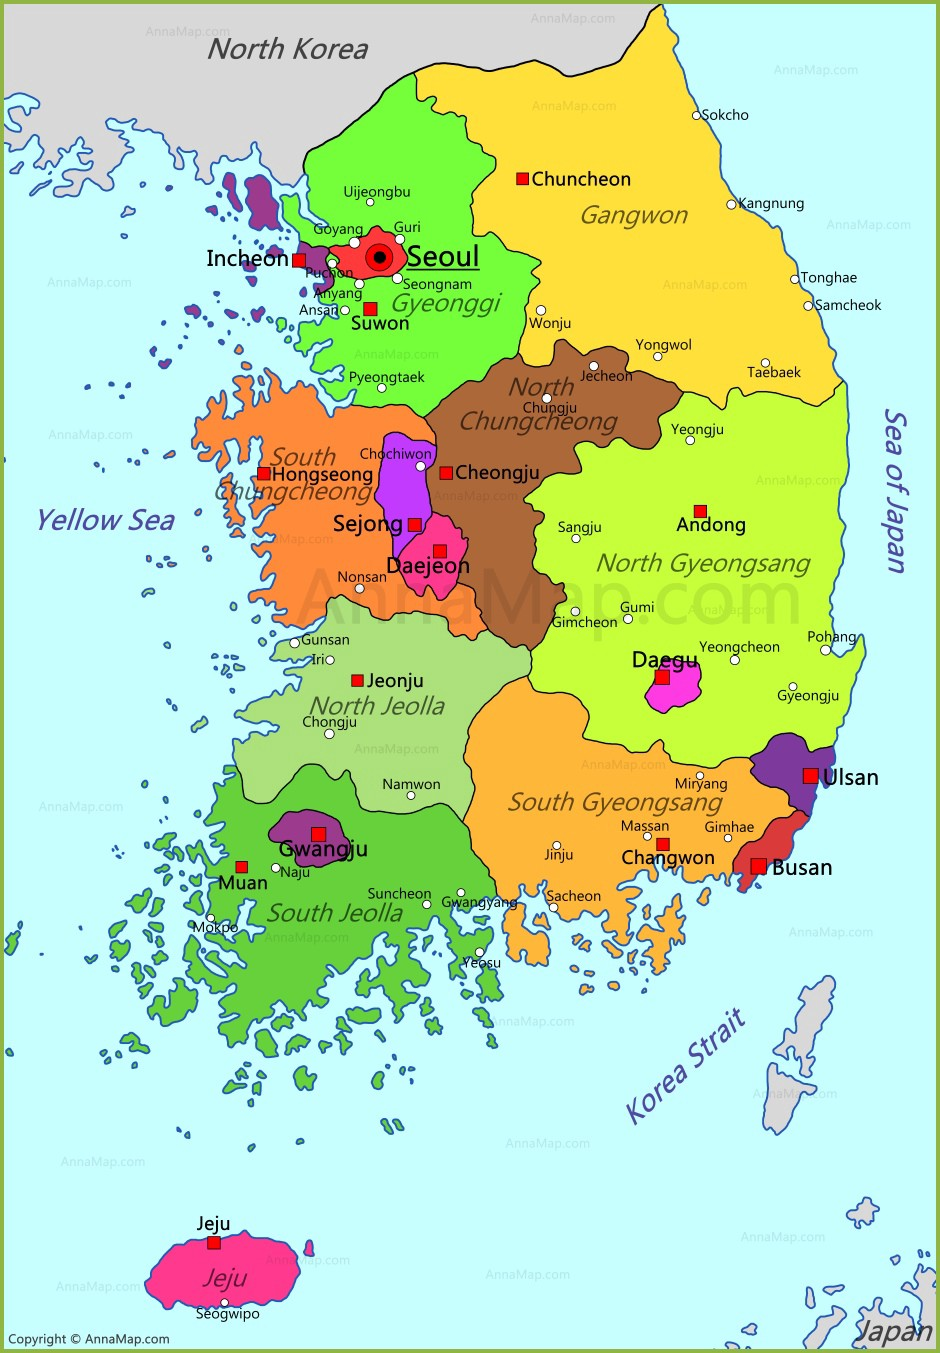 What is K-Pop? (persuasive) - BTS- Bangtan Sonyeondan - Medium Map Of Only South Korea on map of malaya, map of germany, map of caribbean islands, map of kyushu, map of united states, map of north korea, map of switzerland, map of oman, map of korea and surrounding countries, map of south pacific, map hong kong, map of guam, map of seoul, map of venezuela, map of france, map of asia, map of south korean cities and towns, map of korean peninsula, map of iceland, map of philippines,